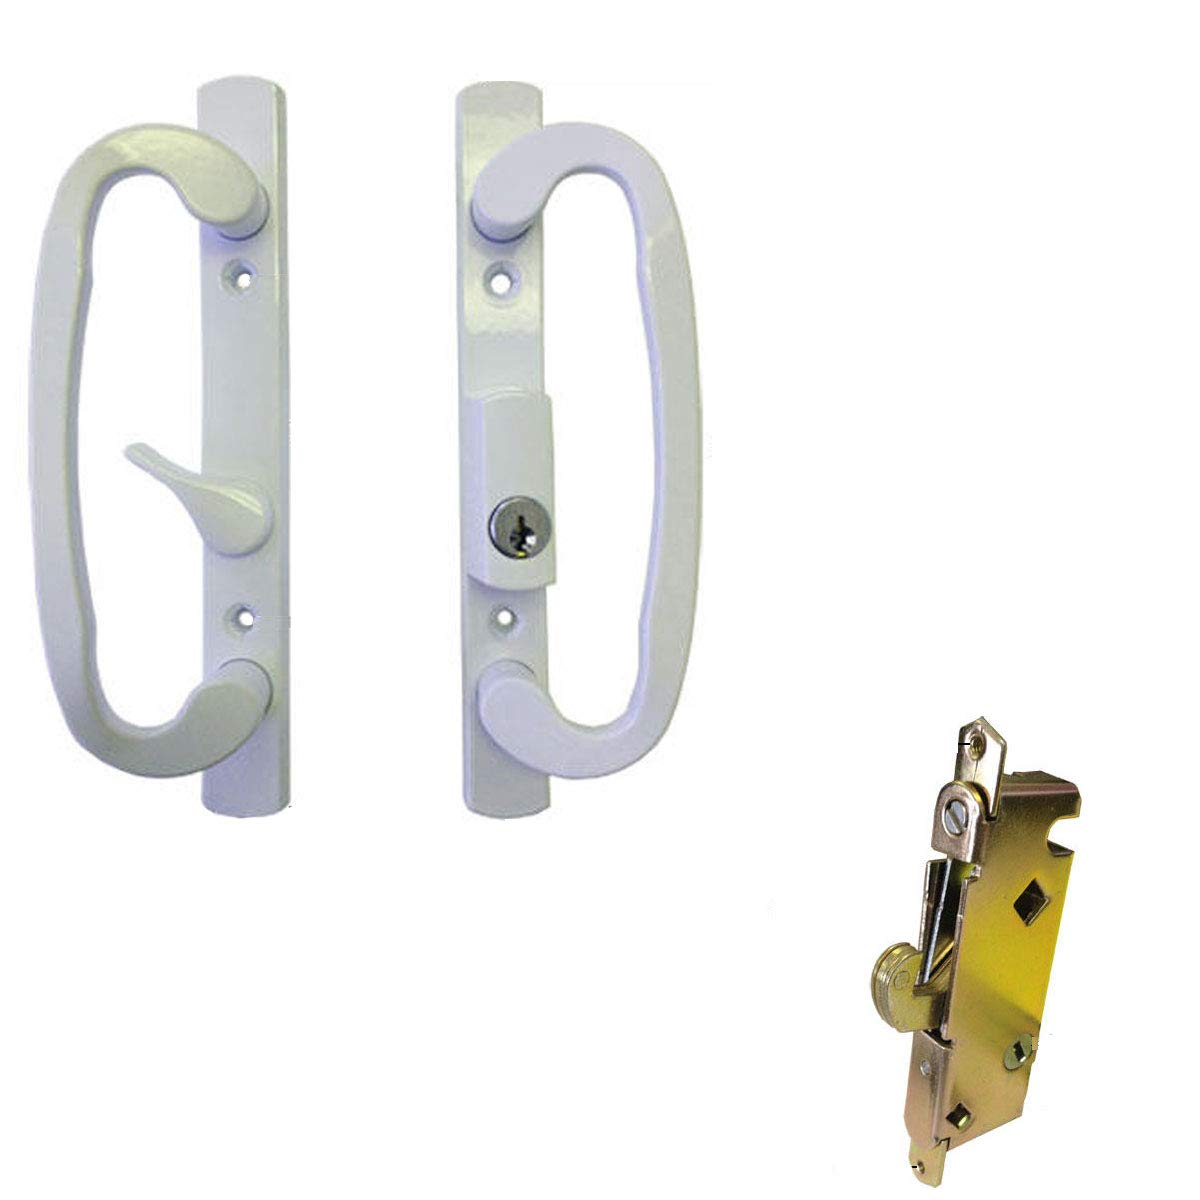 Sliding Glass Patio Door Handle Set with Mortise Lock, White, Keyed, 3-15/16 Screw Holes by TechnologyLK by TechnologyLK (Image #1)